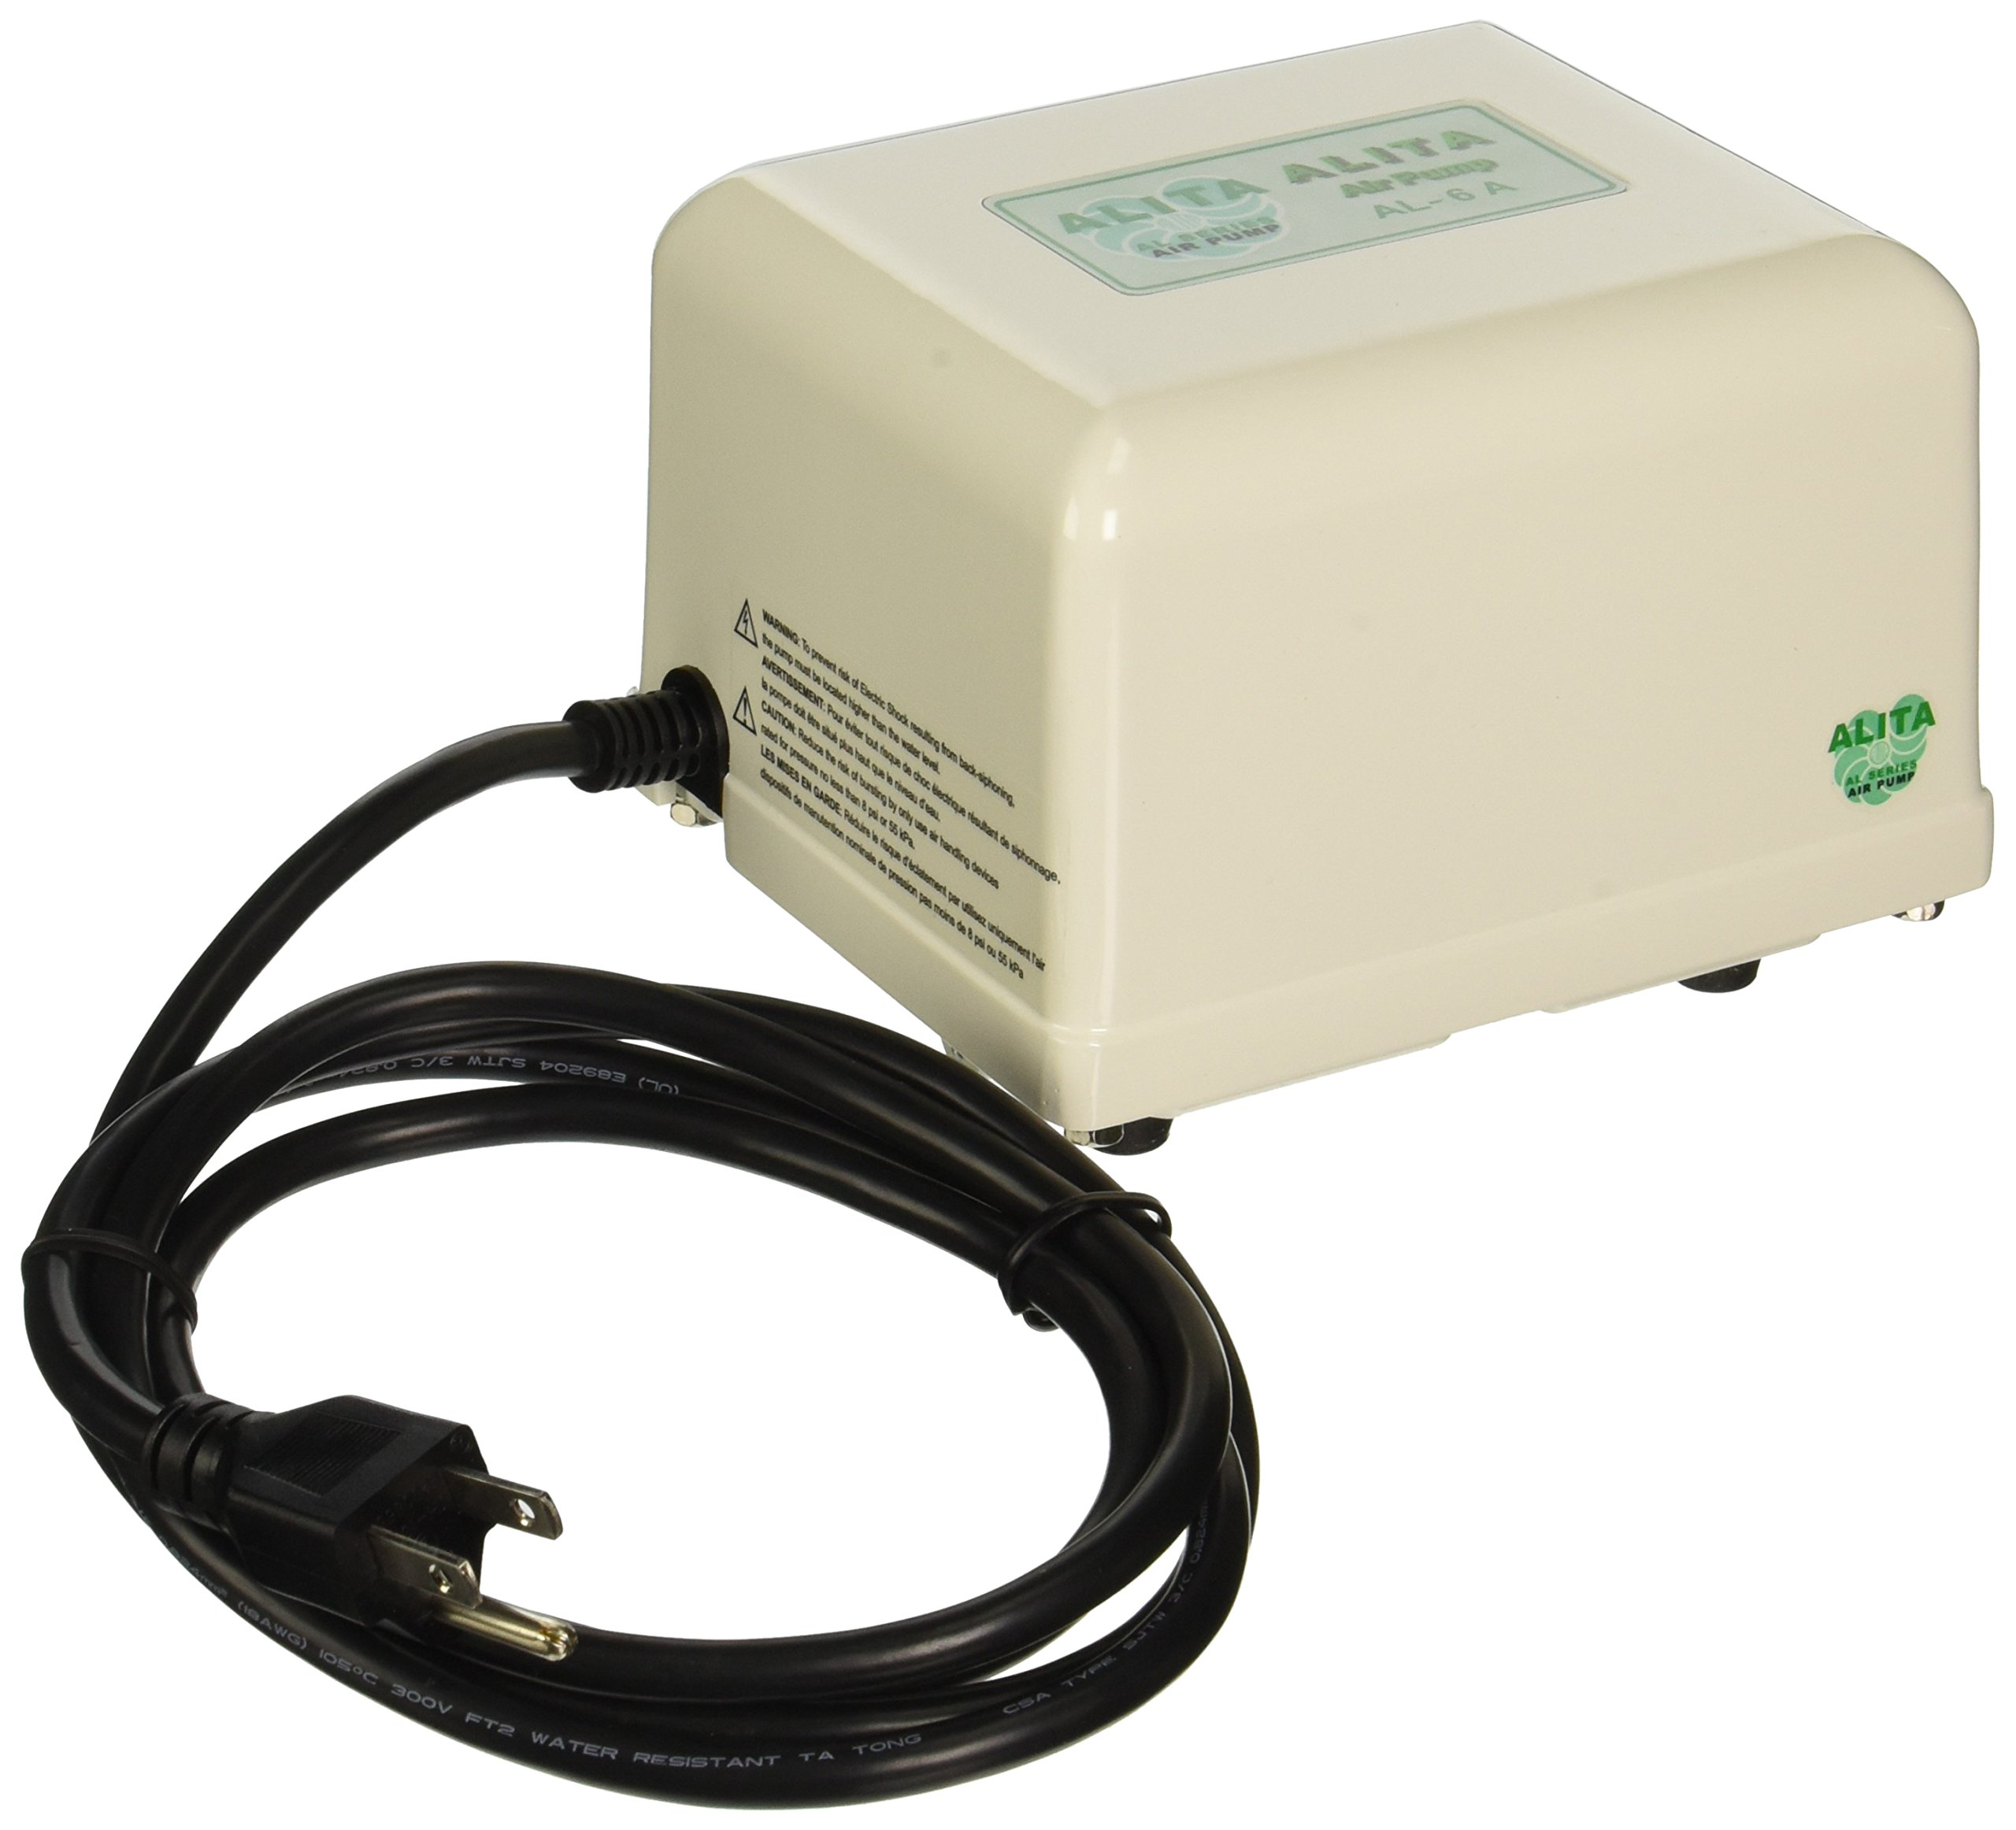 ALITA INDUSTRIES Air Pump 6 LPM by ALITA INDUSTRIES